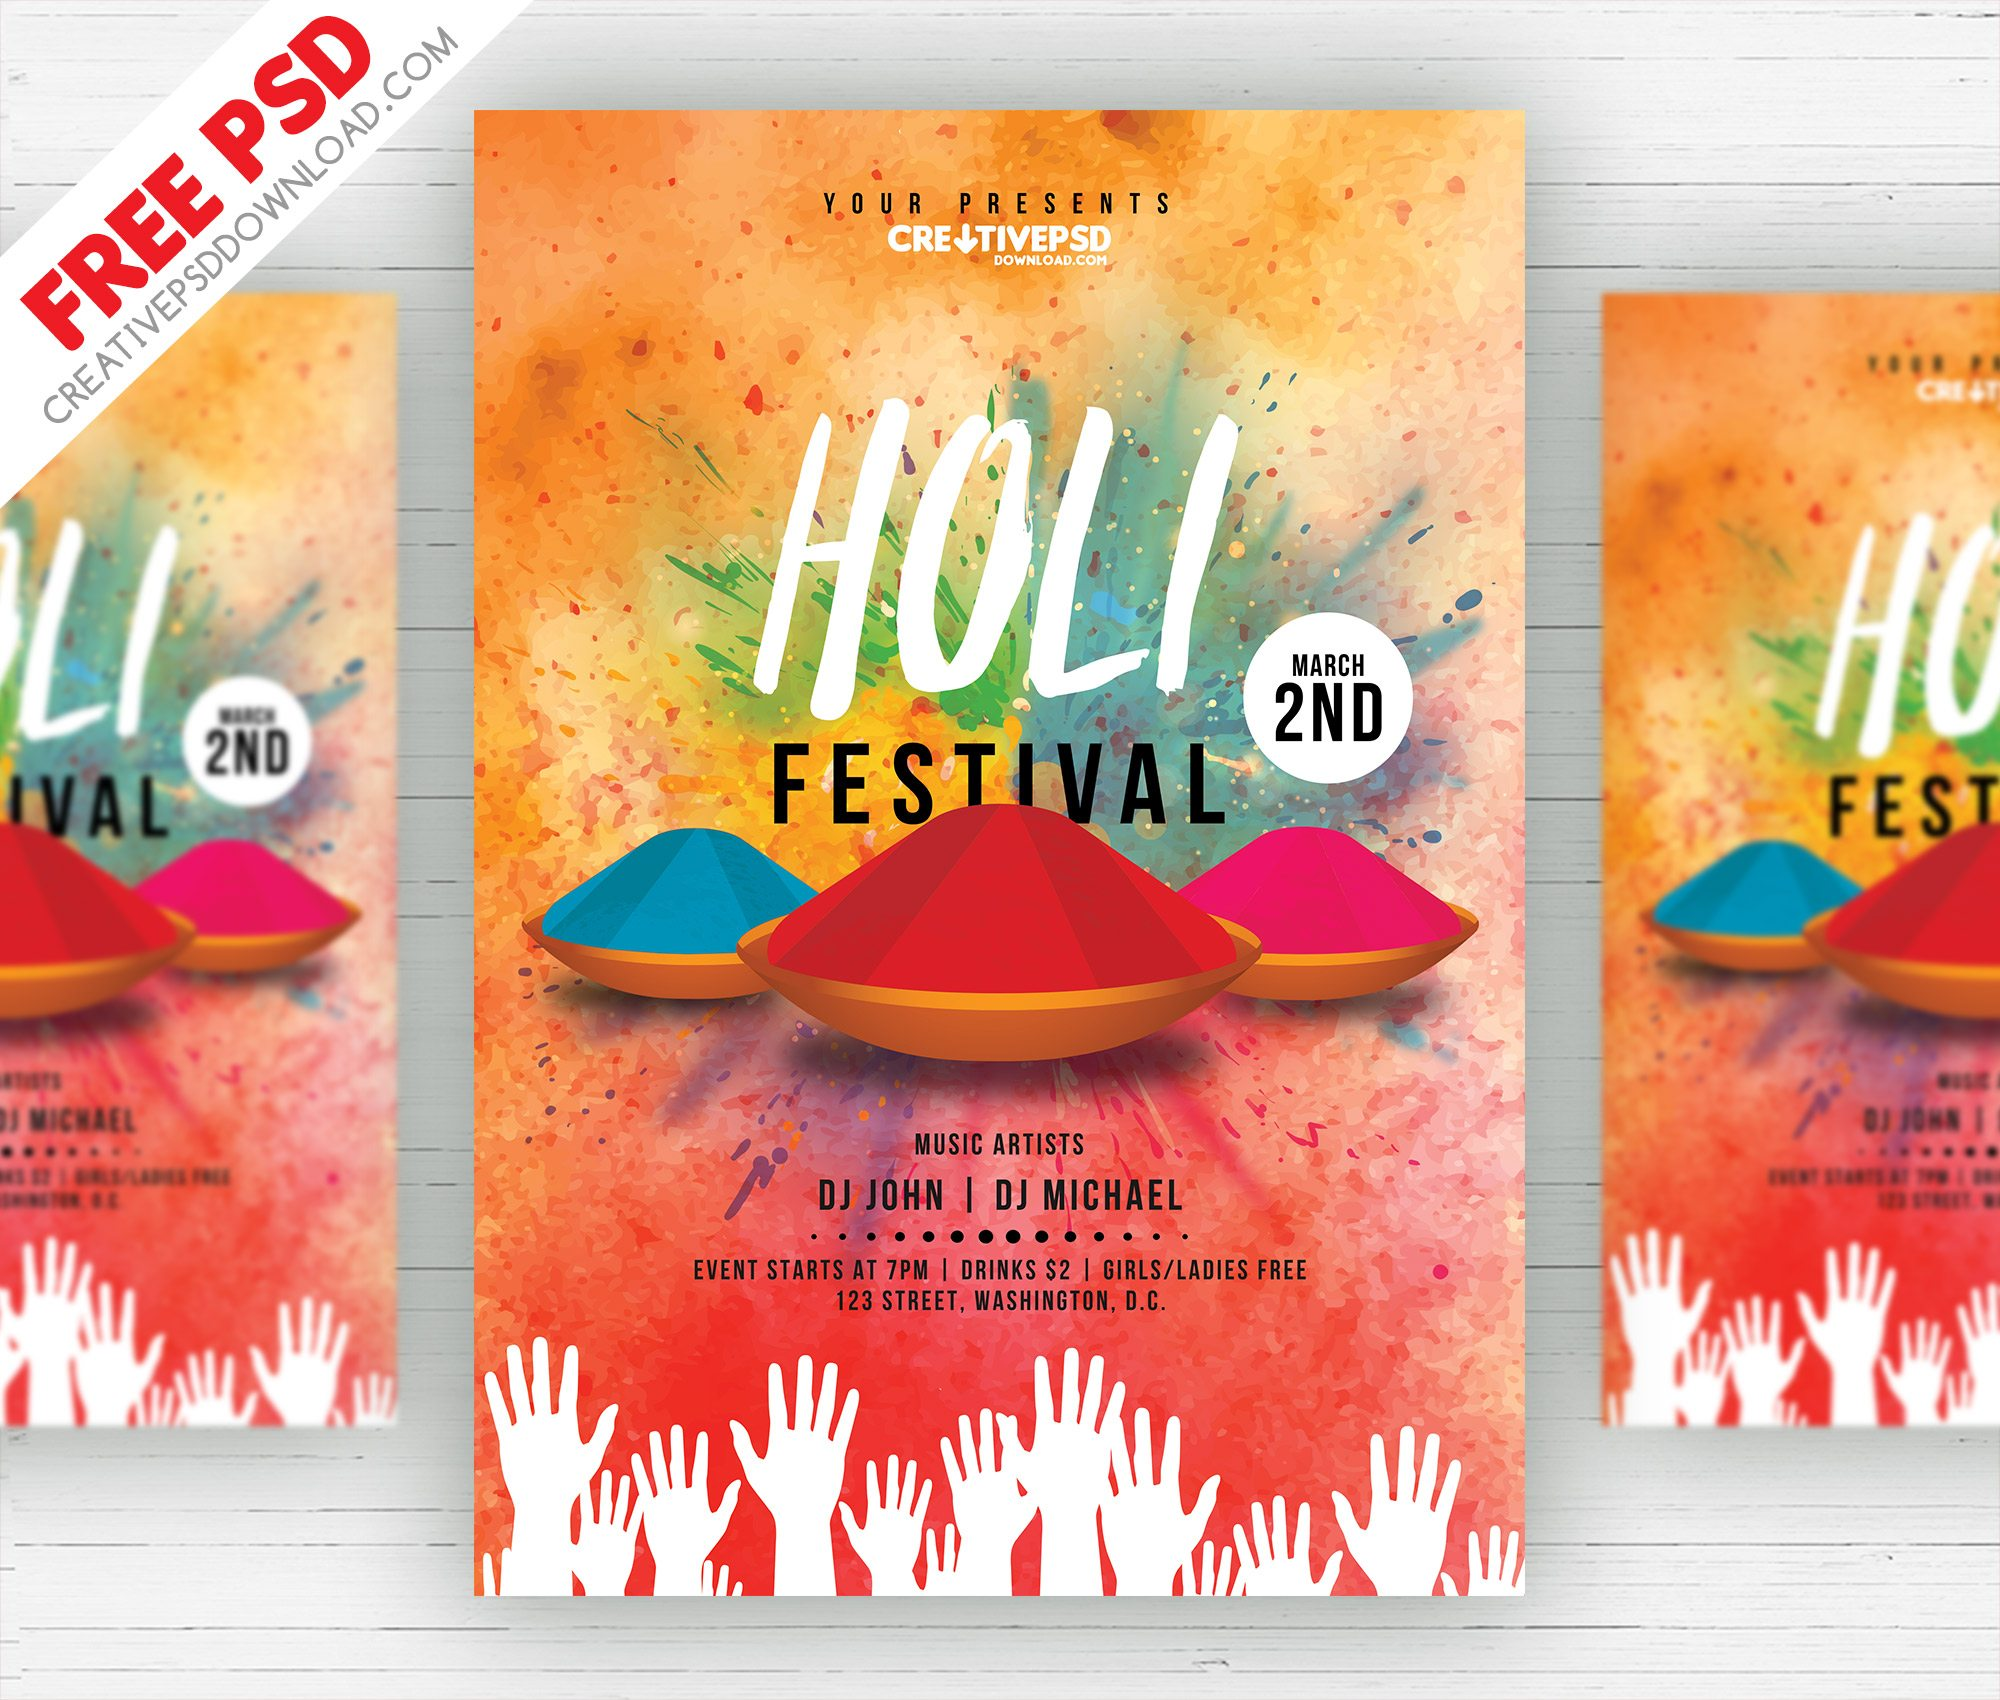 dj party flyer,download psd,festival flyer,festival party,free psd,holi festival flyer free psd,holy festival flyer,holy flyer,holy party flyer,psd freebies,psd mockup